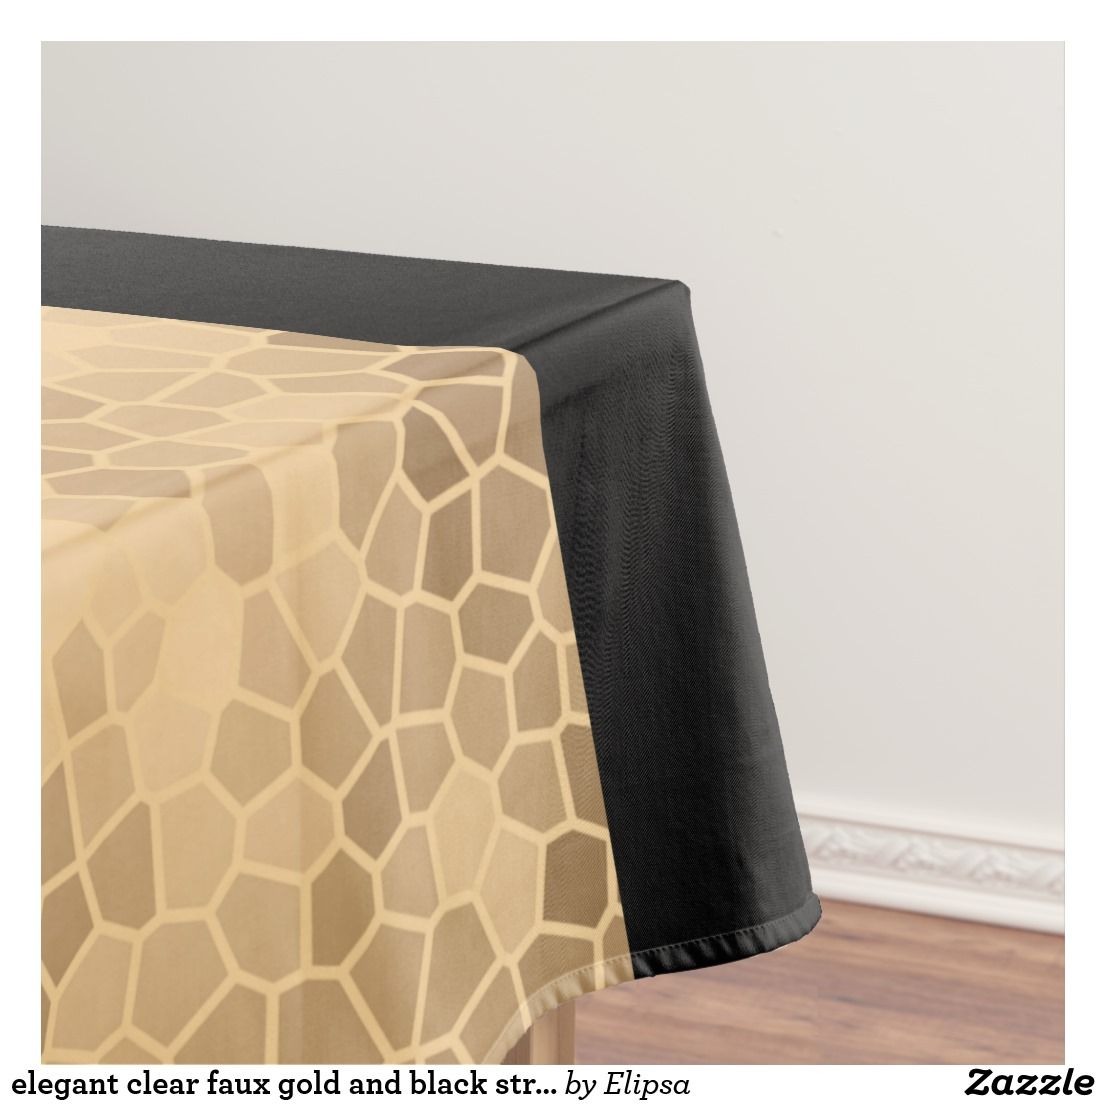 Elegant Clear Faux Gold And Black Stripes Tablecloth Zazzle Com Black Stripes Gold Stripes Elegant